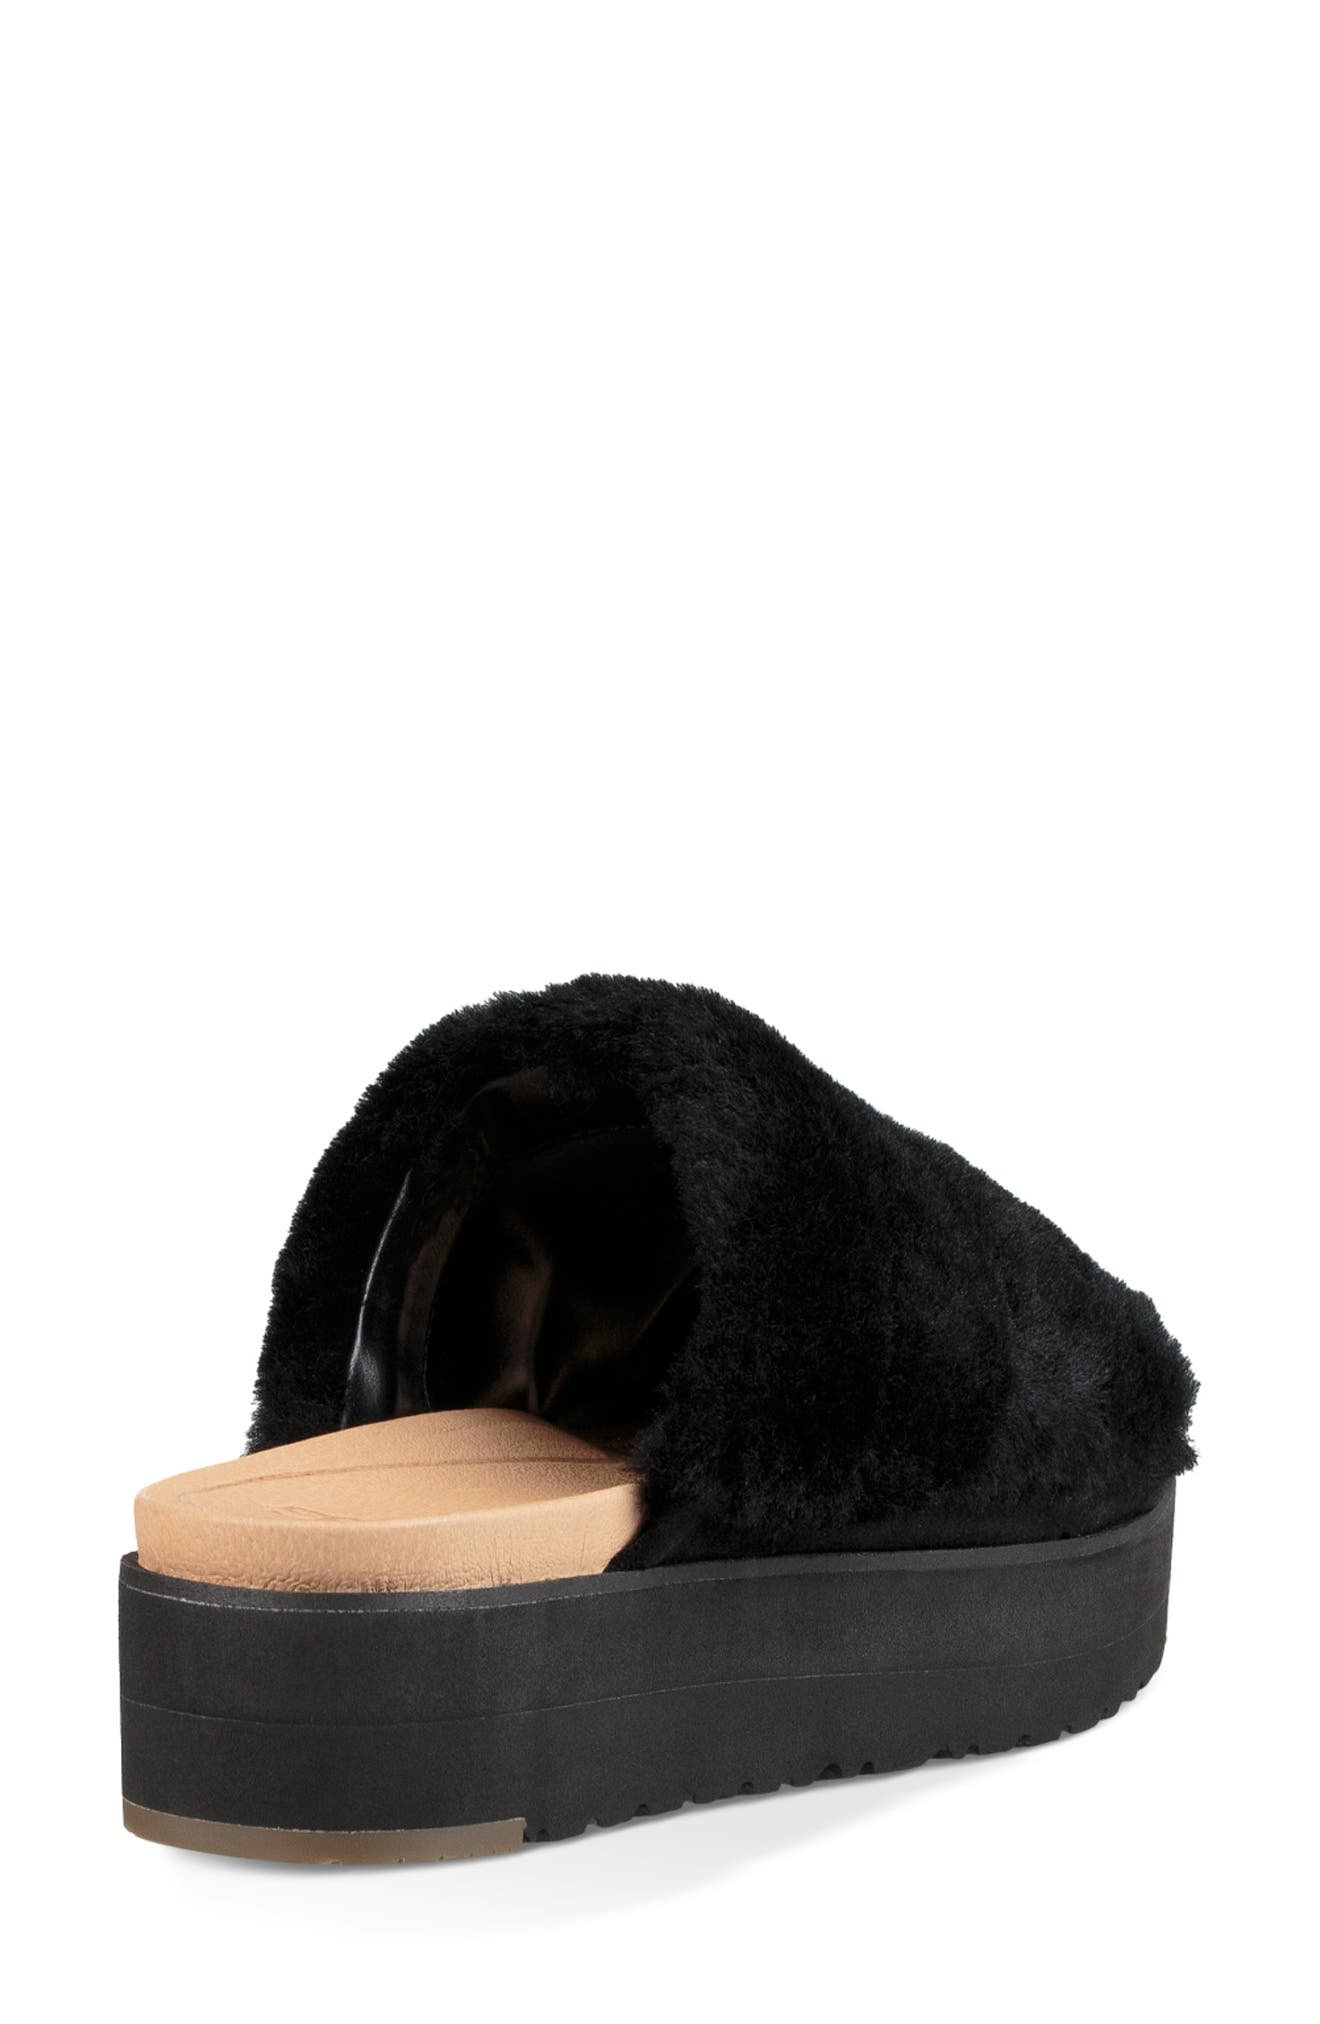 Fluff Yeah Genuine Shearling Slide Sandal,                             Alternate thumbnail 2, color,                             001